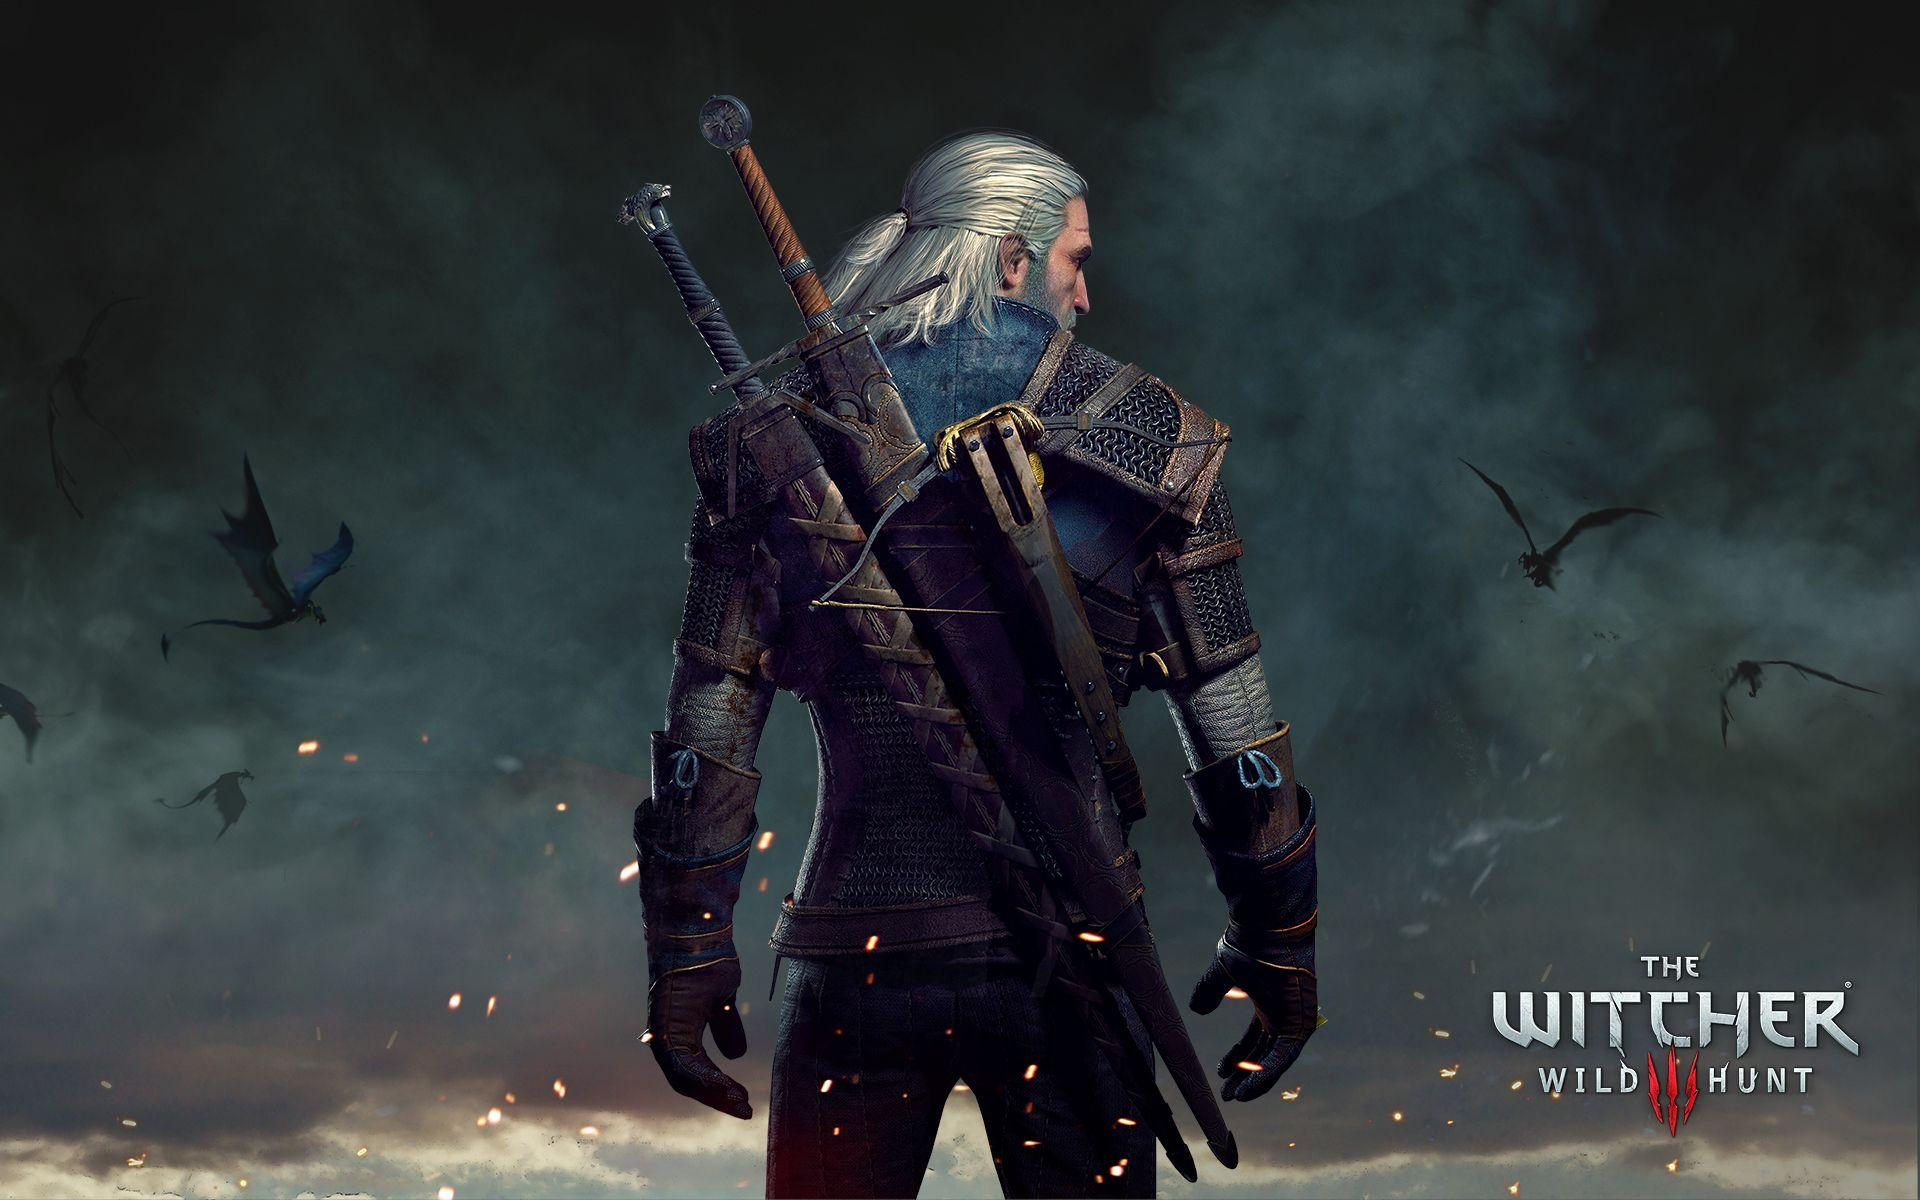 The Witcher 3 Wild Hunt Wallpapers - Wallpaper Cave